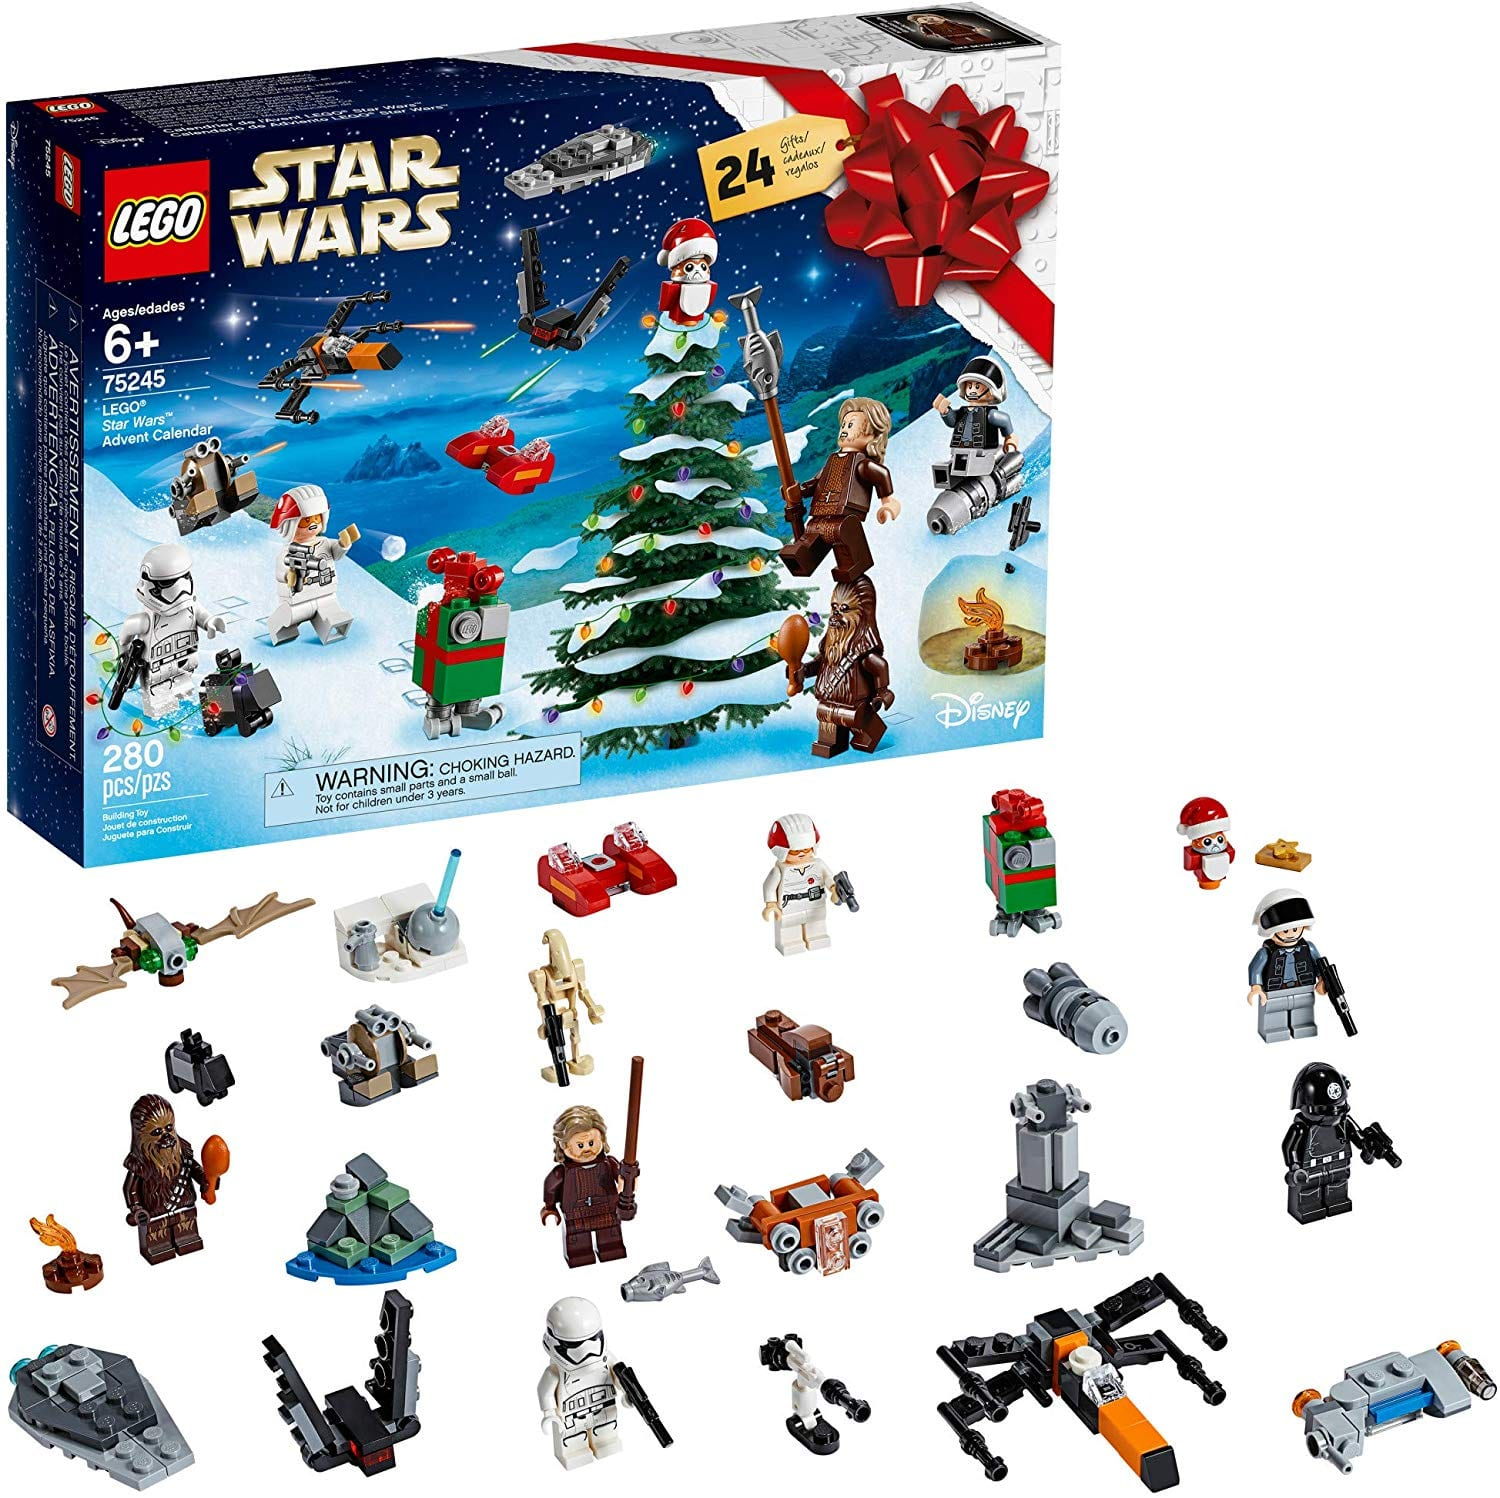 LEGO Star Wars 2019 Advent Calendar 75245 Holiday Gift Set Building Kit with Star Wars Minifigure Characters (280 Pieces) $29.99